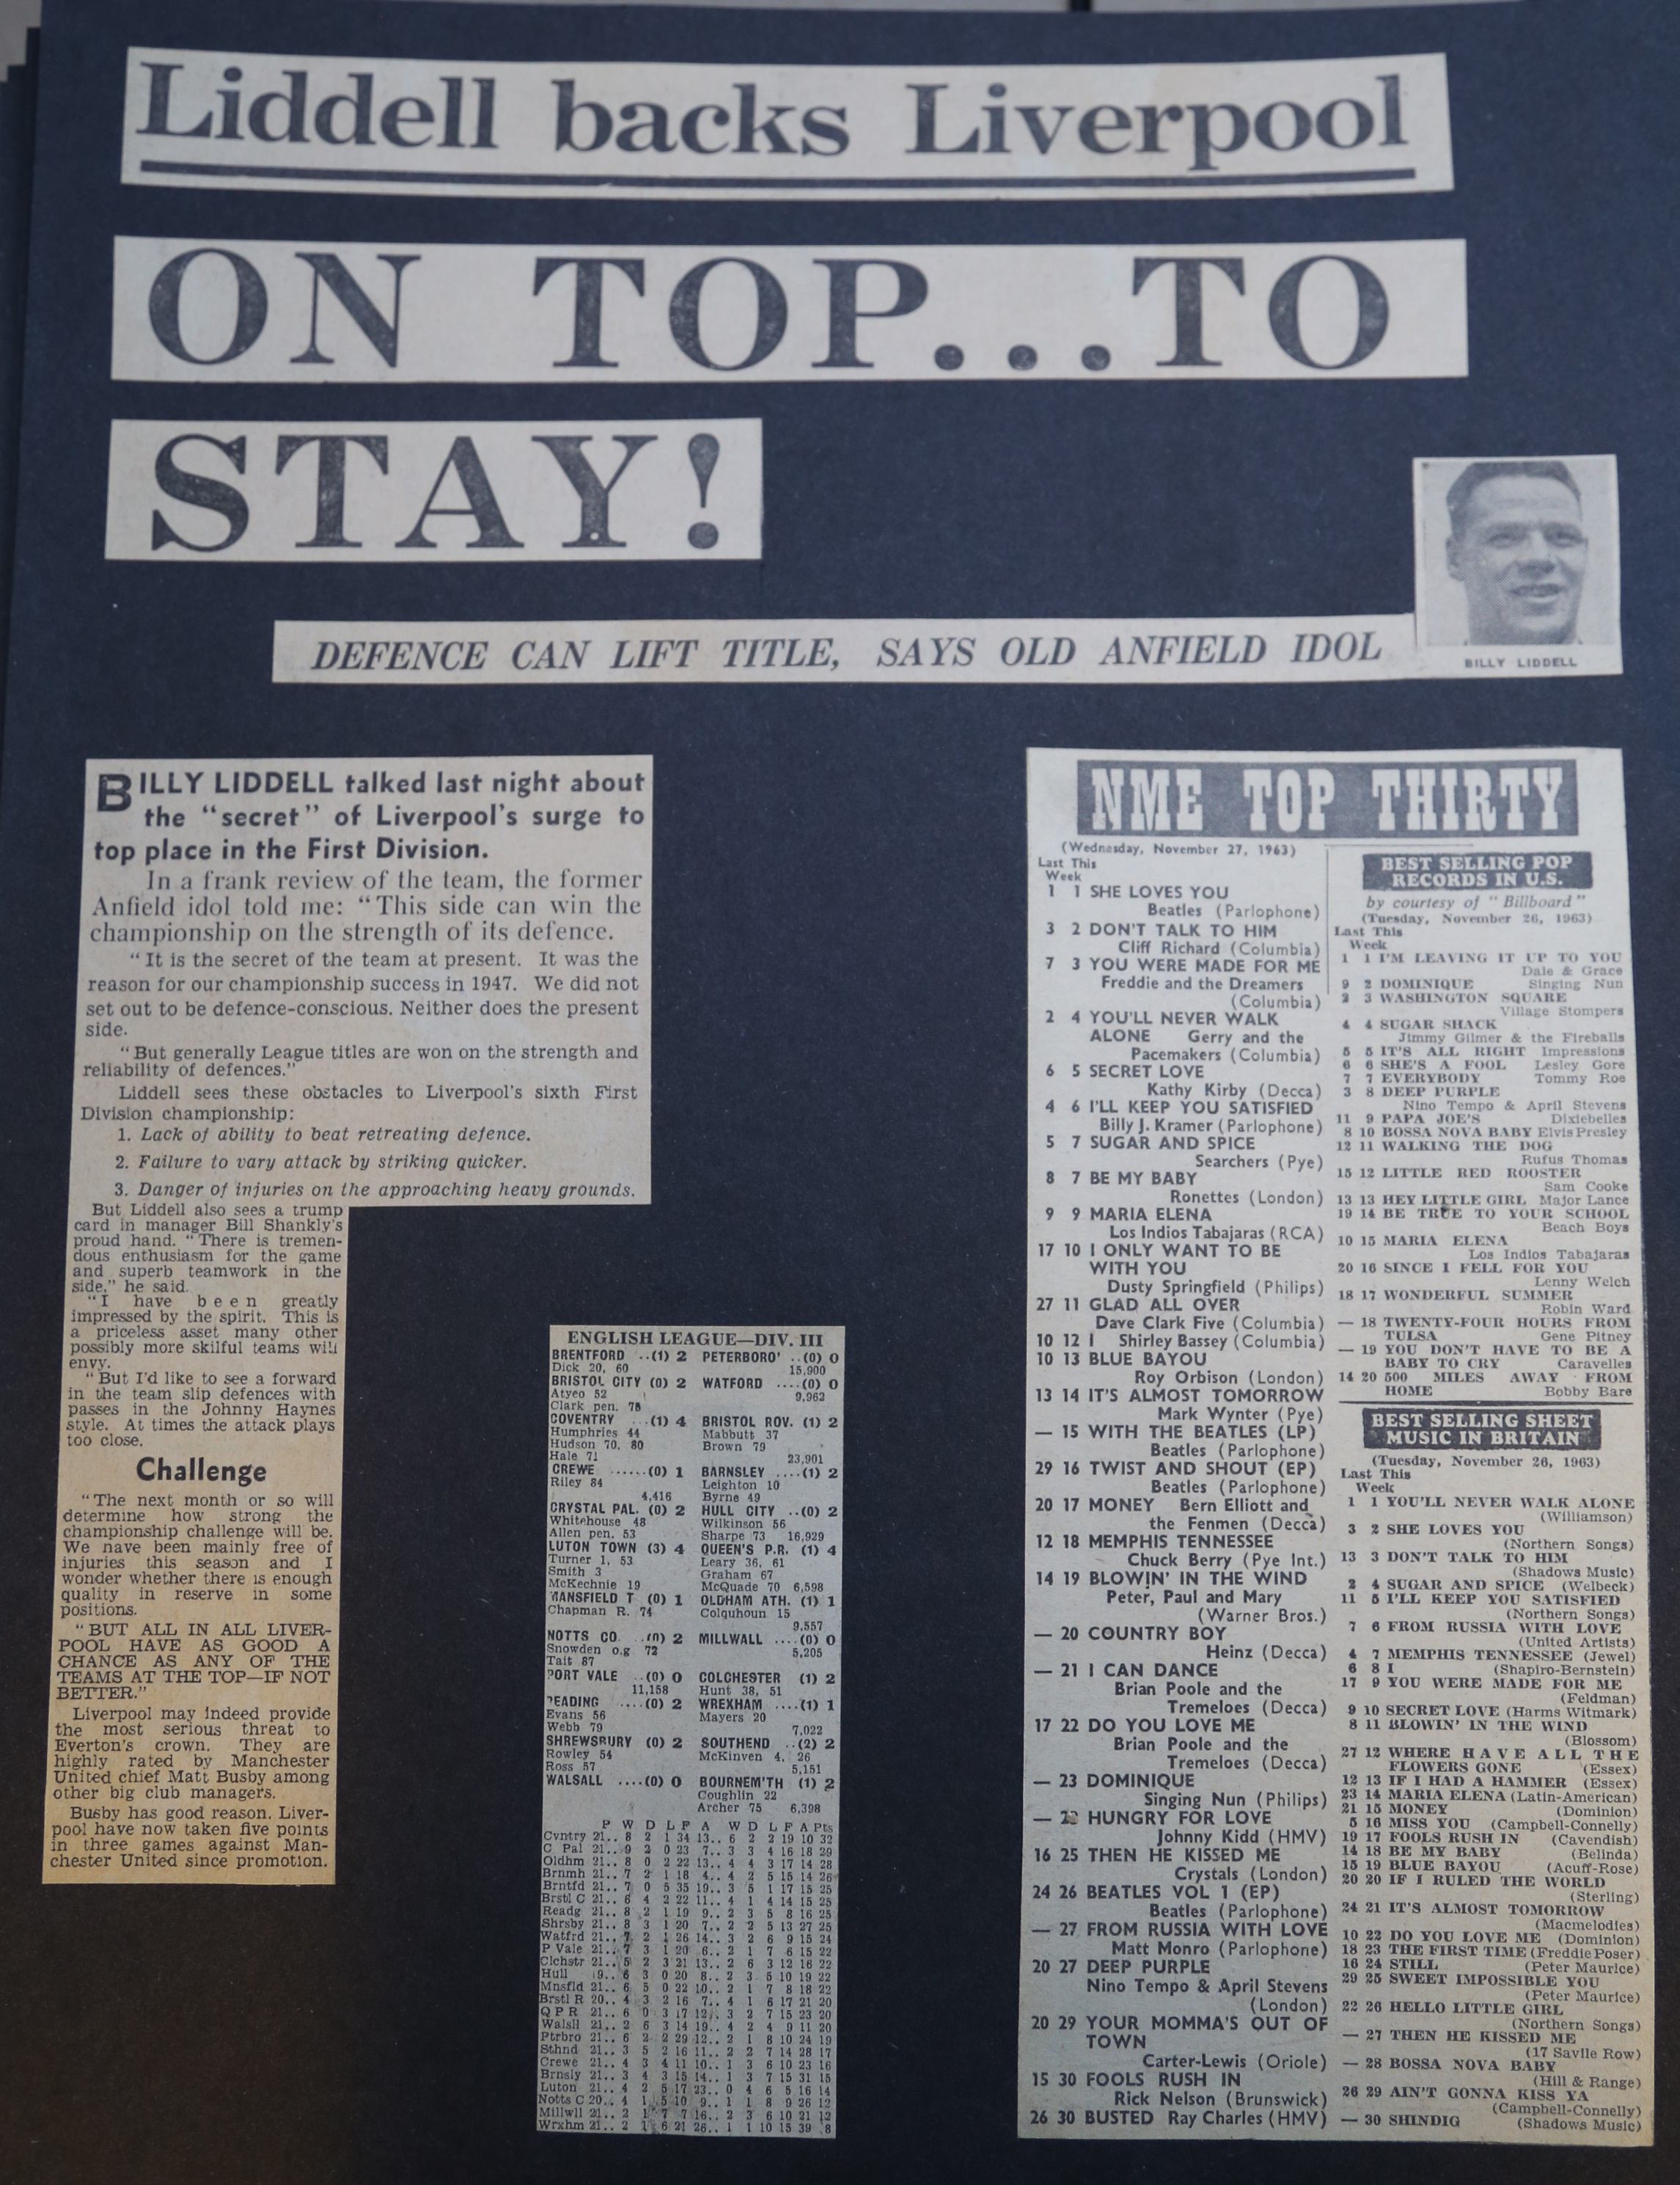 Liddell backs Liverpool on top to stay! - November 1963